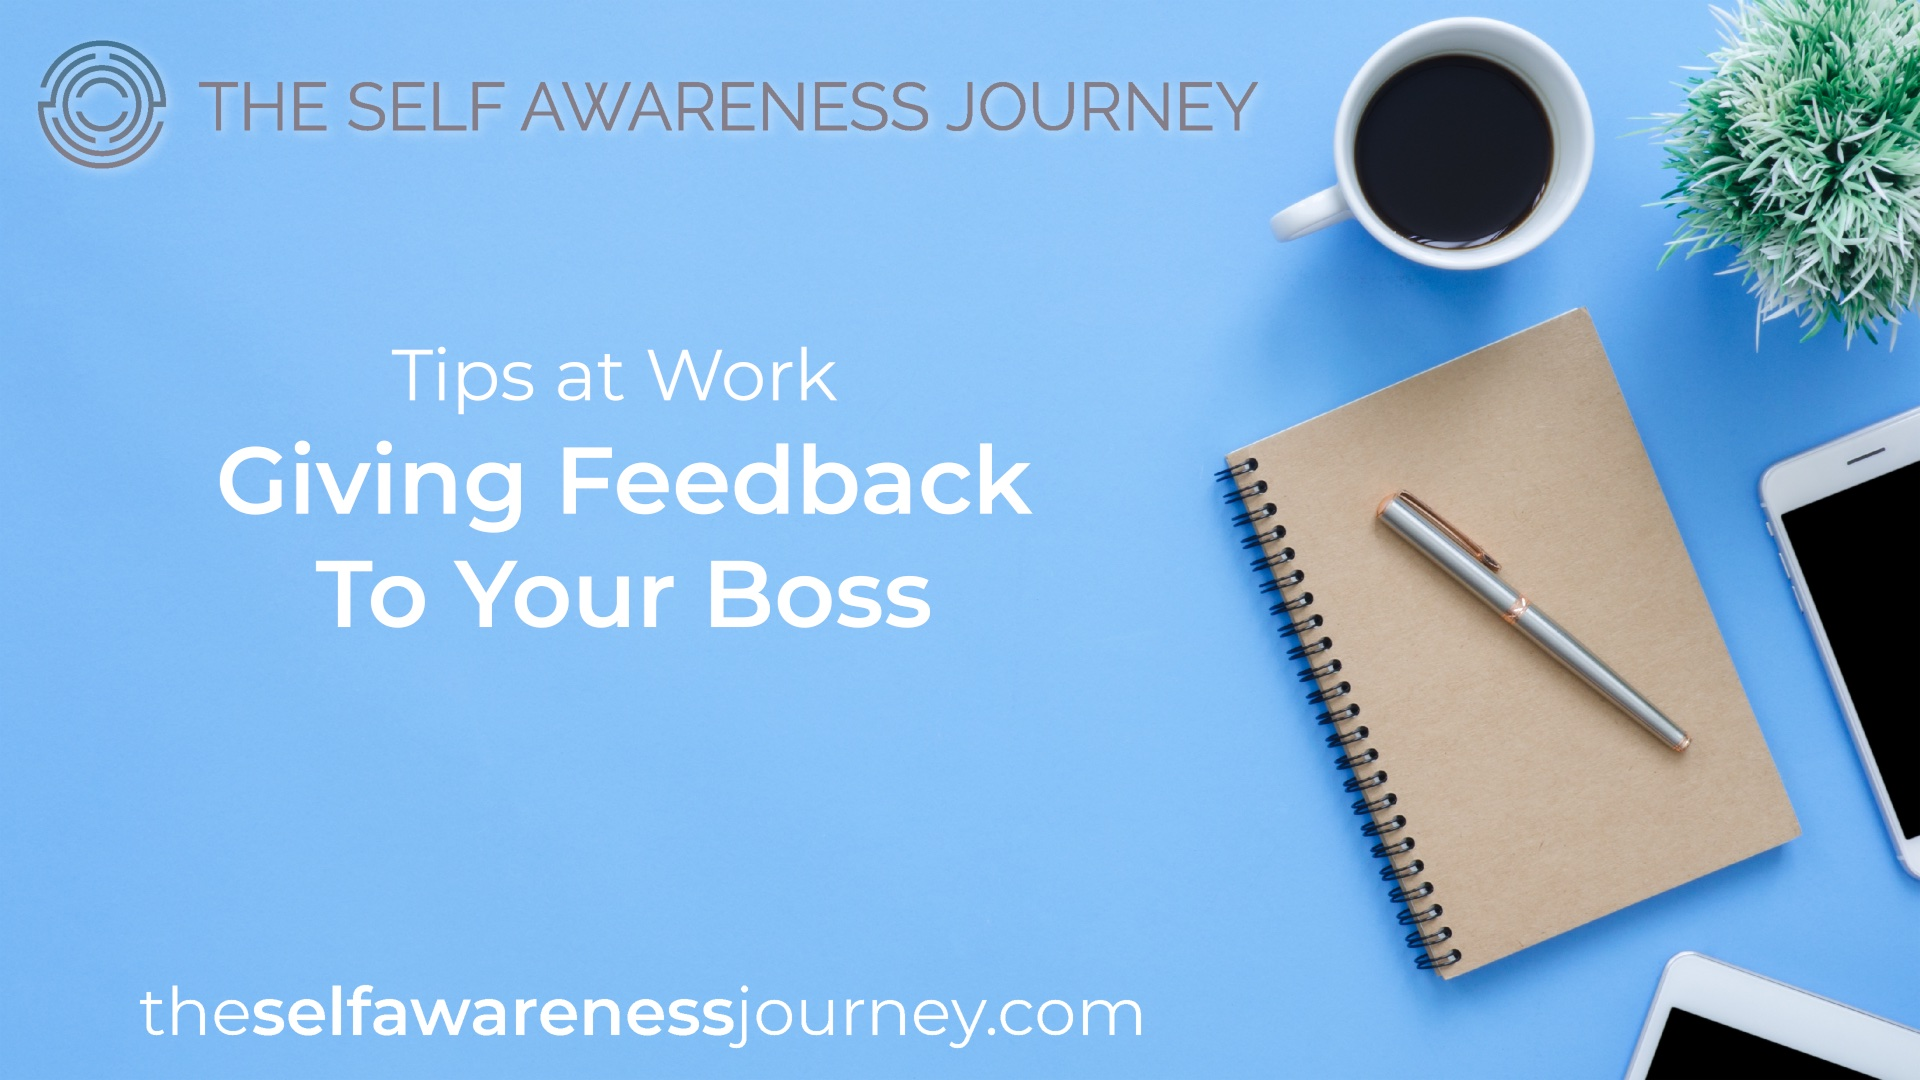 Giving Feedback to Your Boss